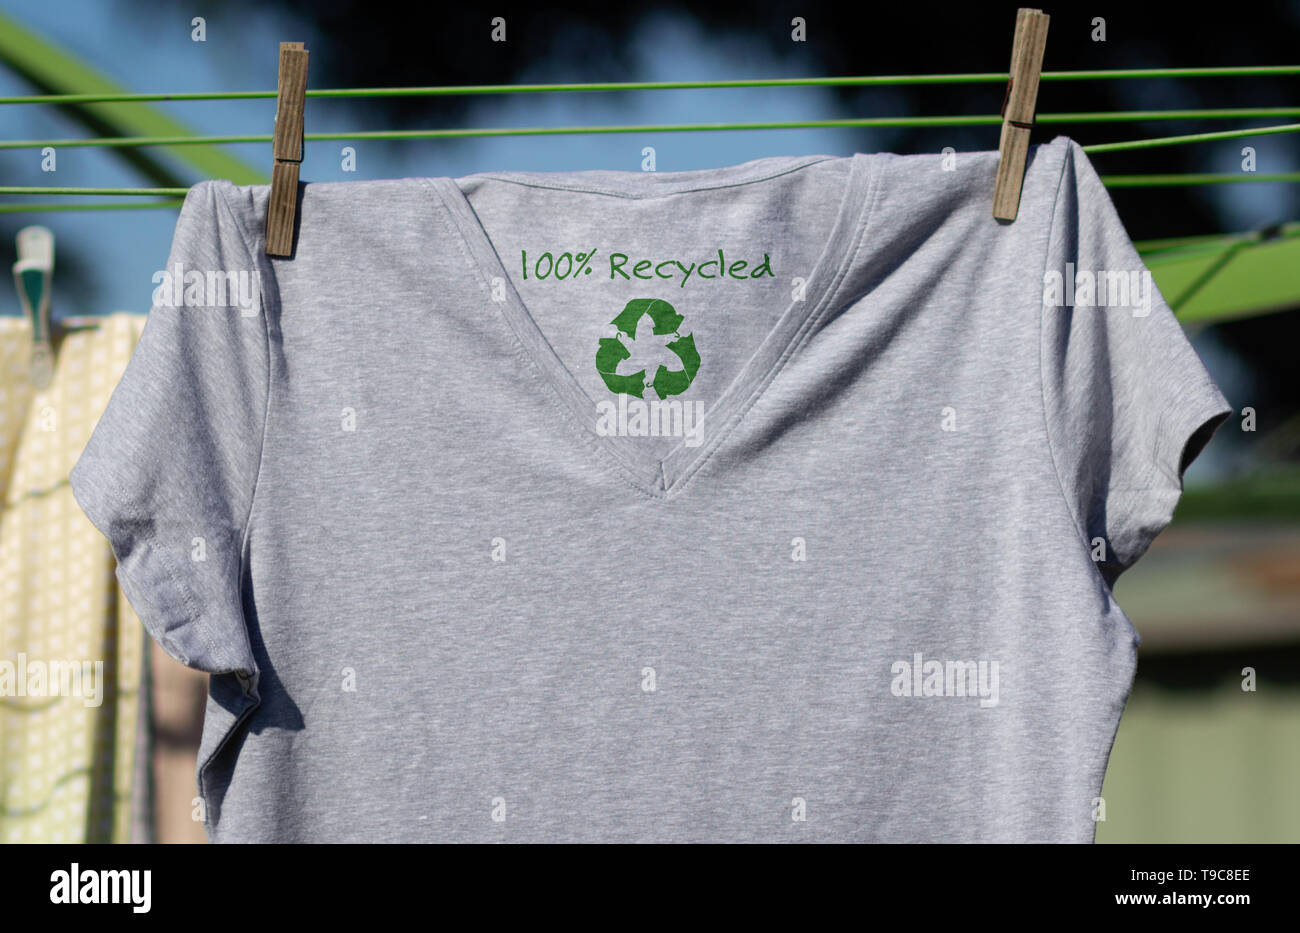 Recycle clothes icon on t shirt with 100% Recycled text, concept illustration reuse, recycle clothes and textiles to reduce waste Stock Photo